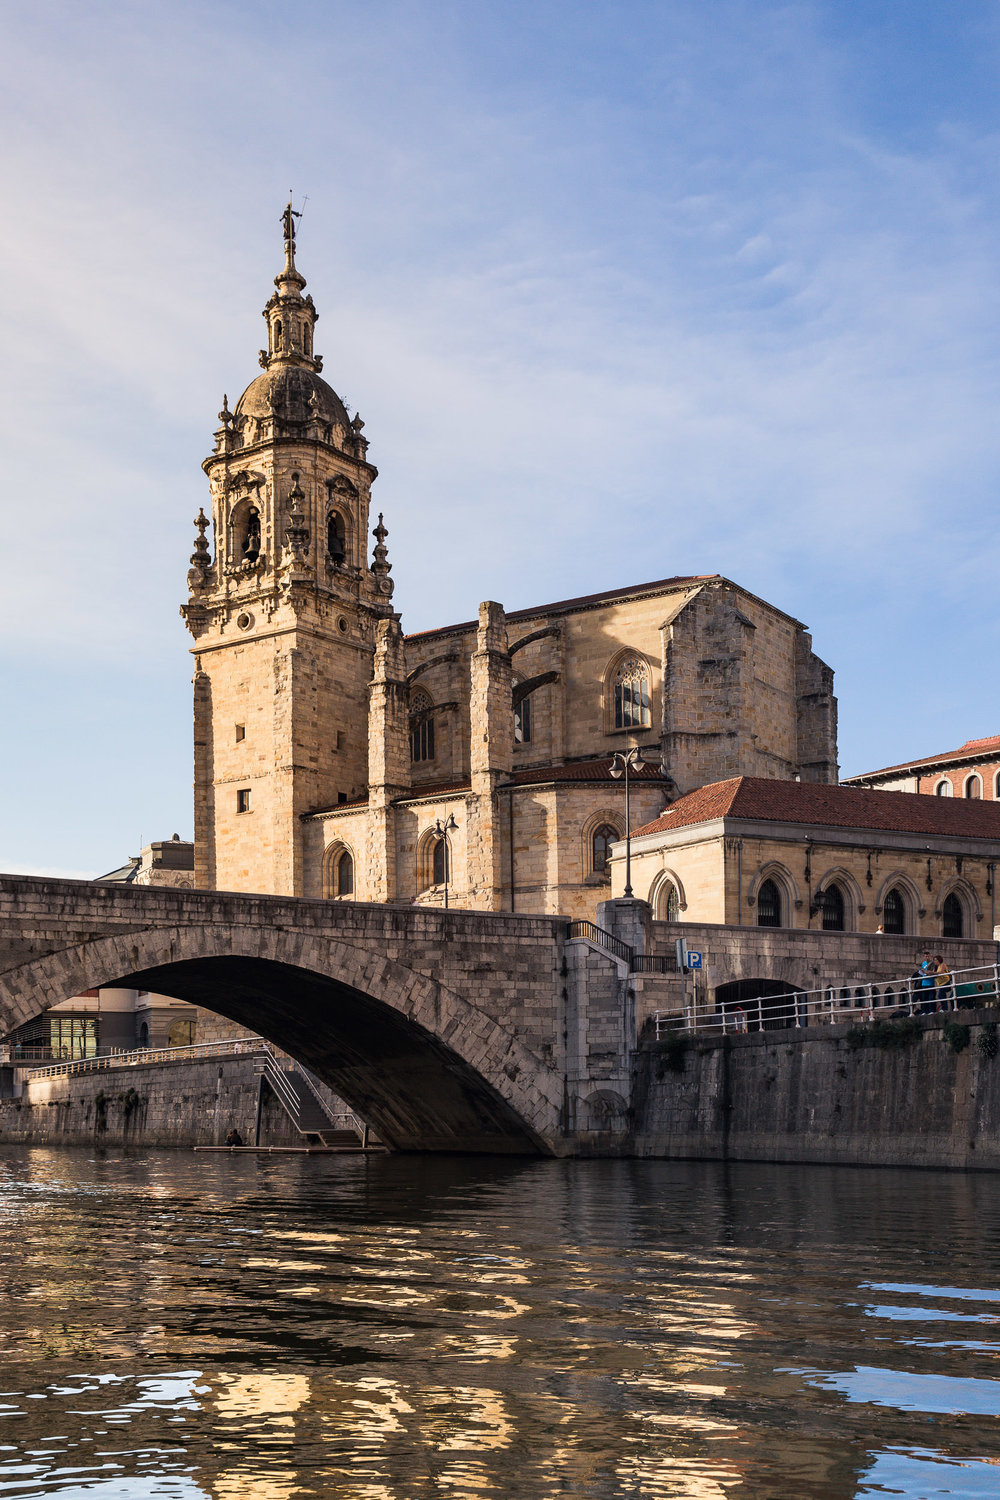 The St. Anthony Church in Bilbao as seen from the Nervion River